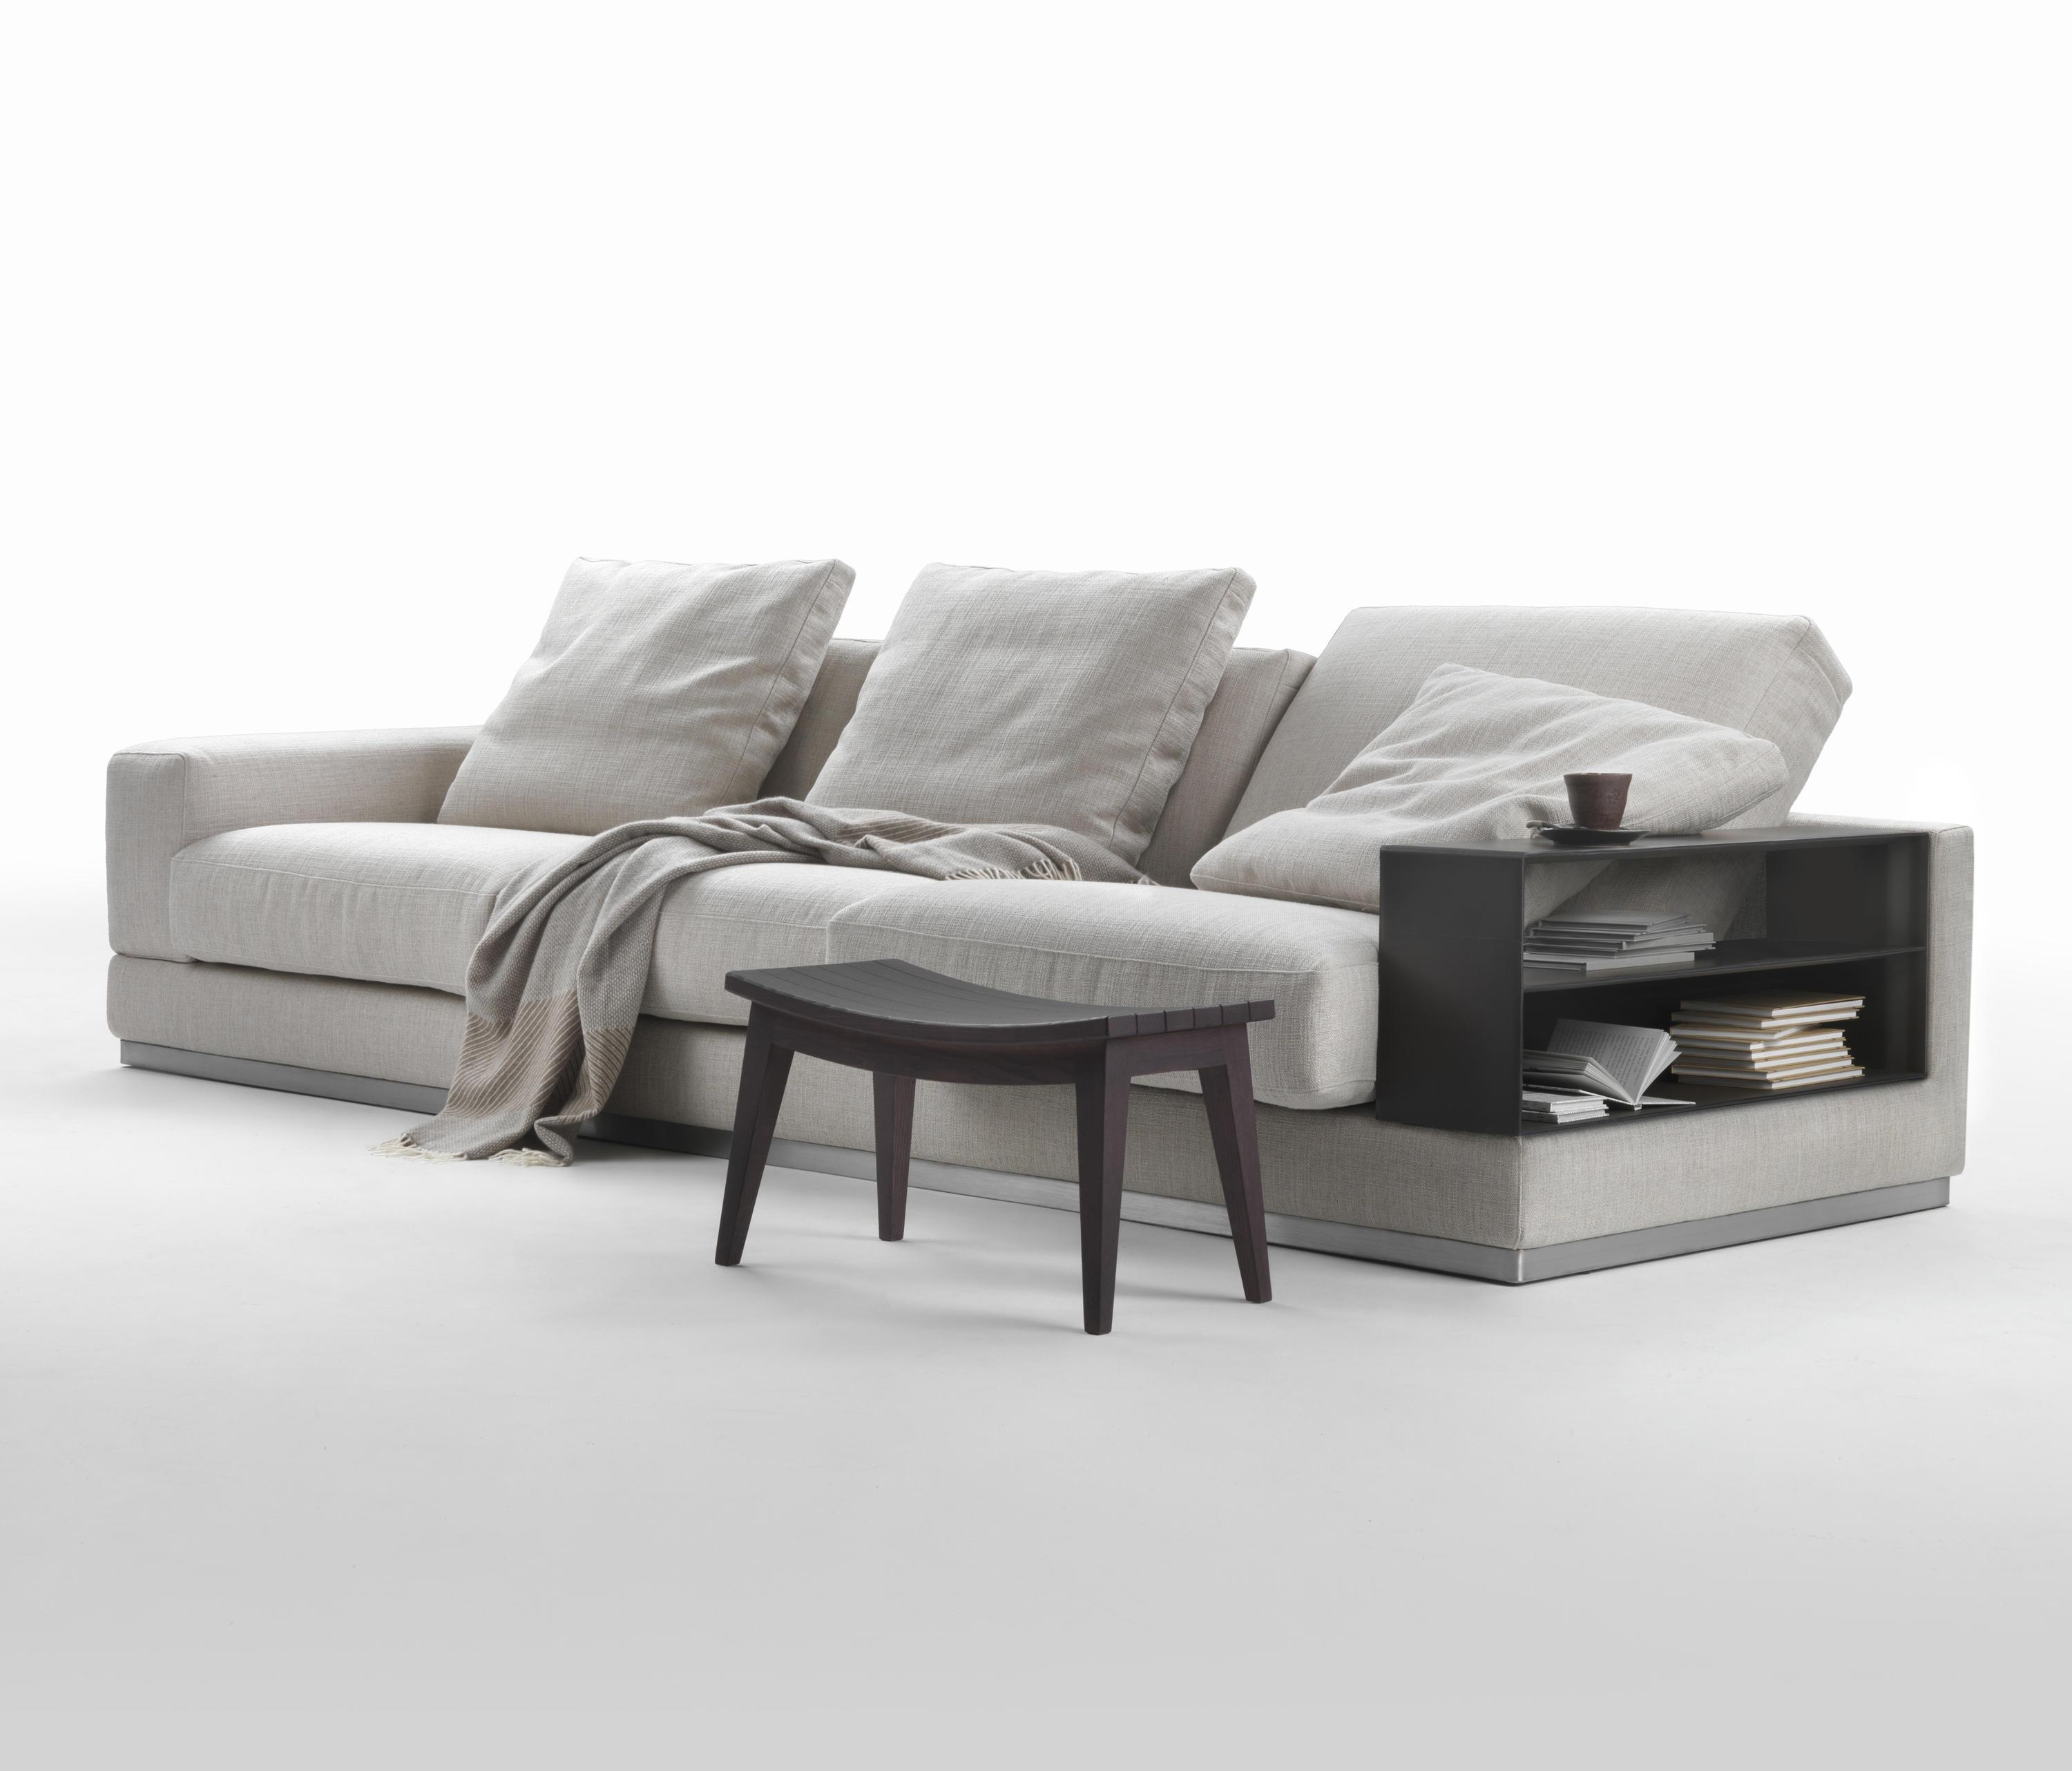 Big Bob – Modular Seating Systems From Flexform | Architonic Regarding Flexform Sofas (View 5 of 20)